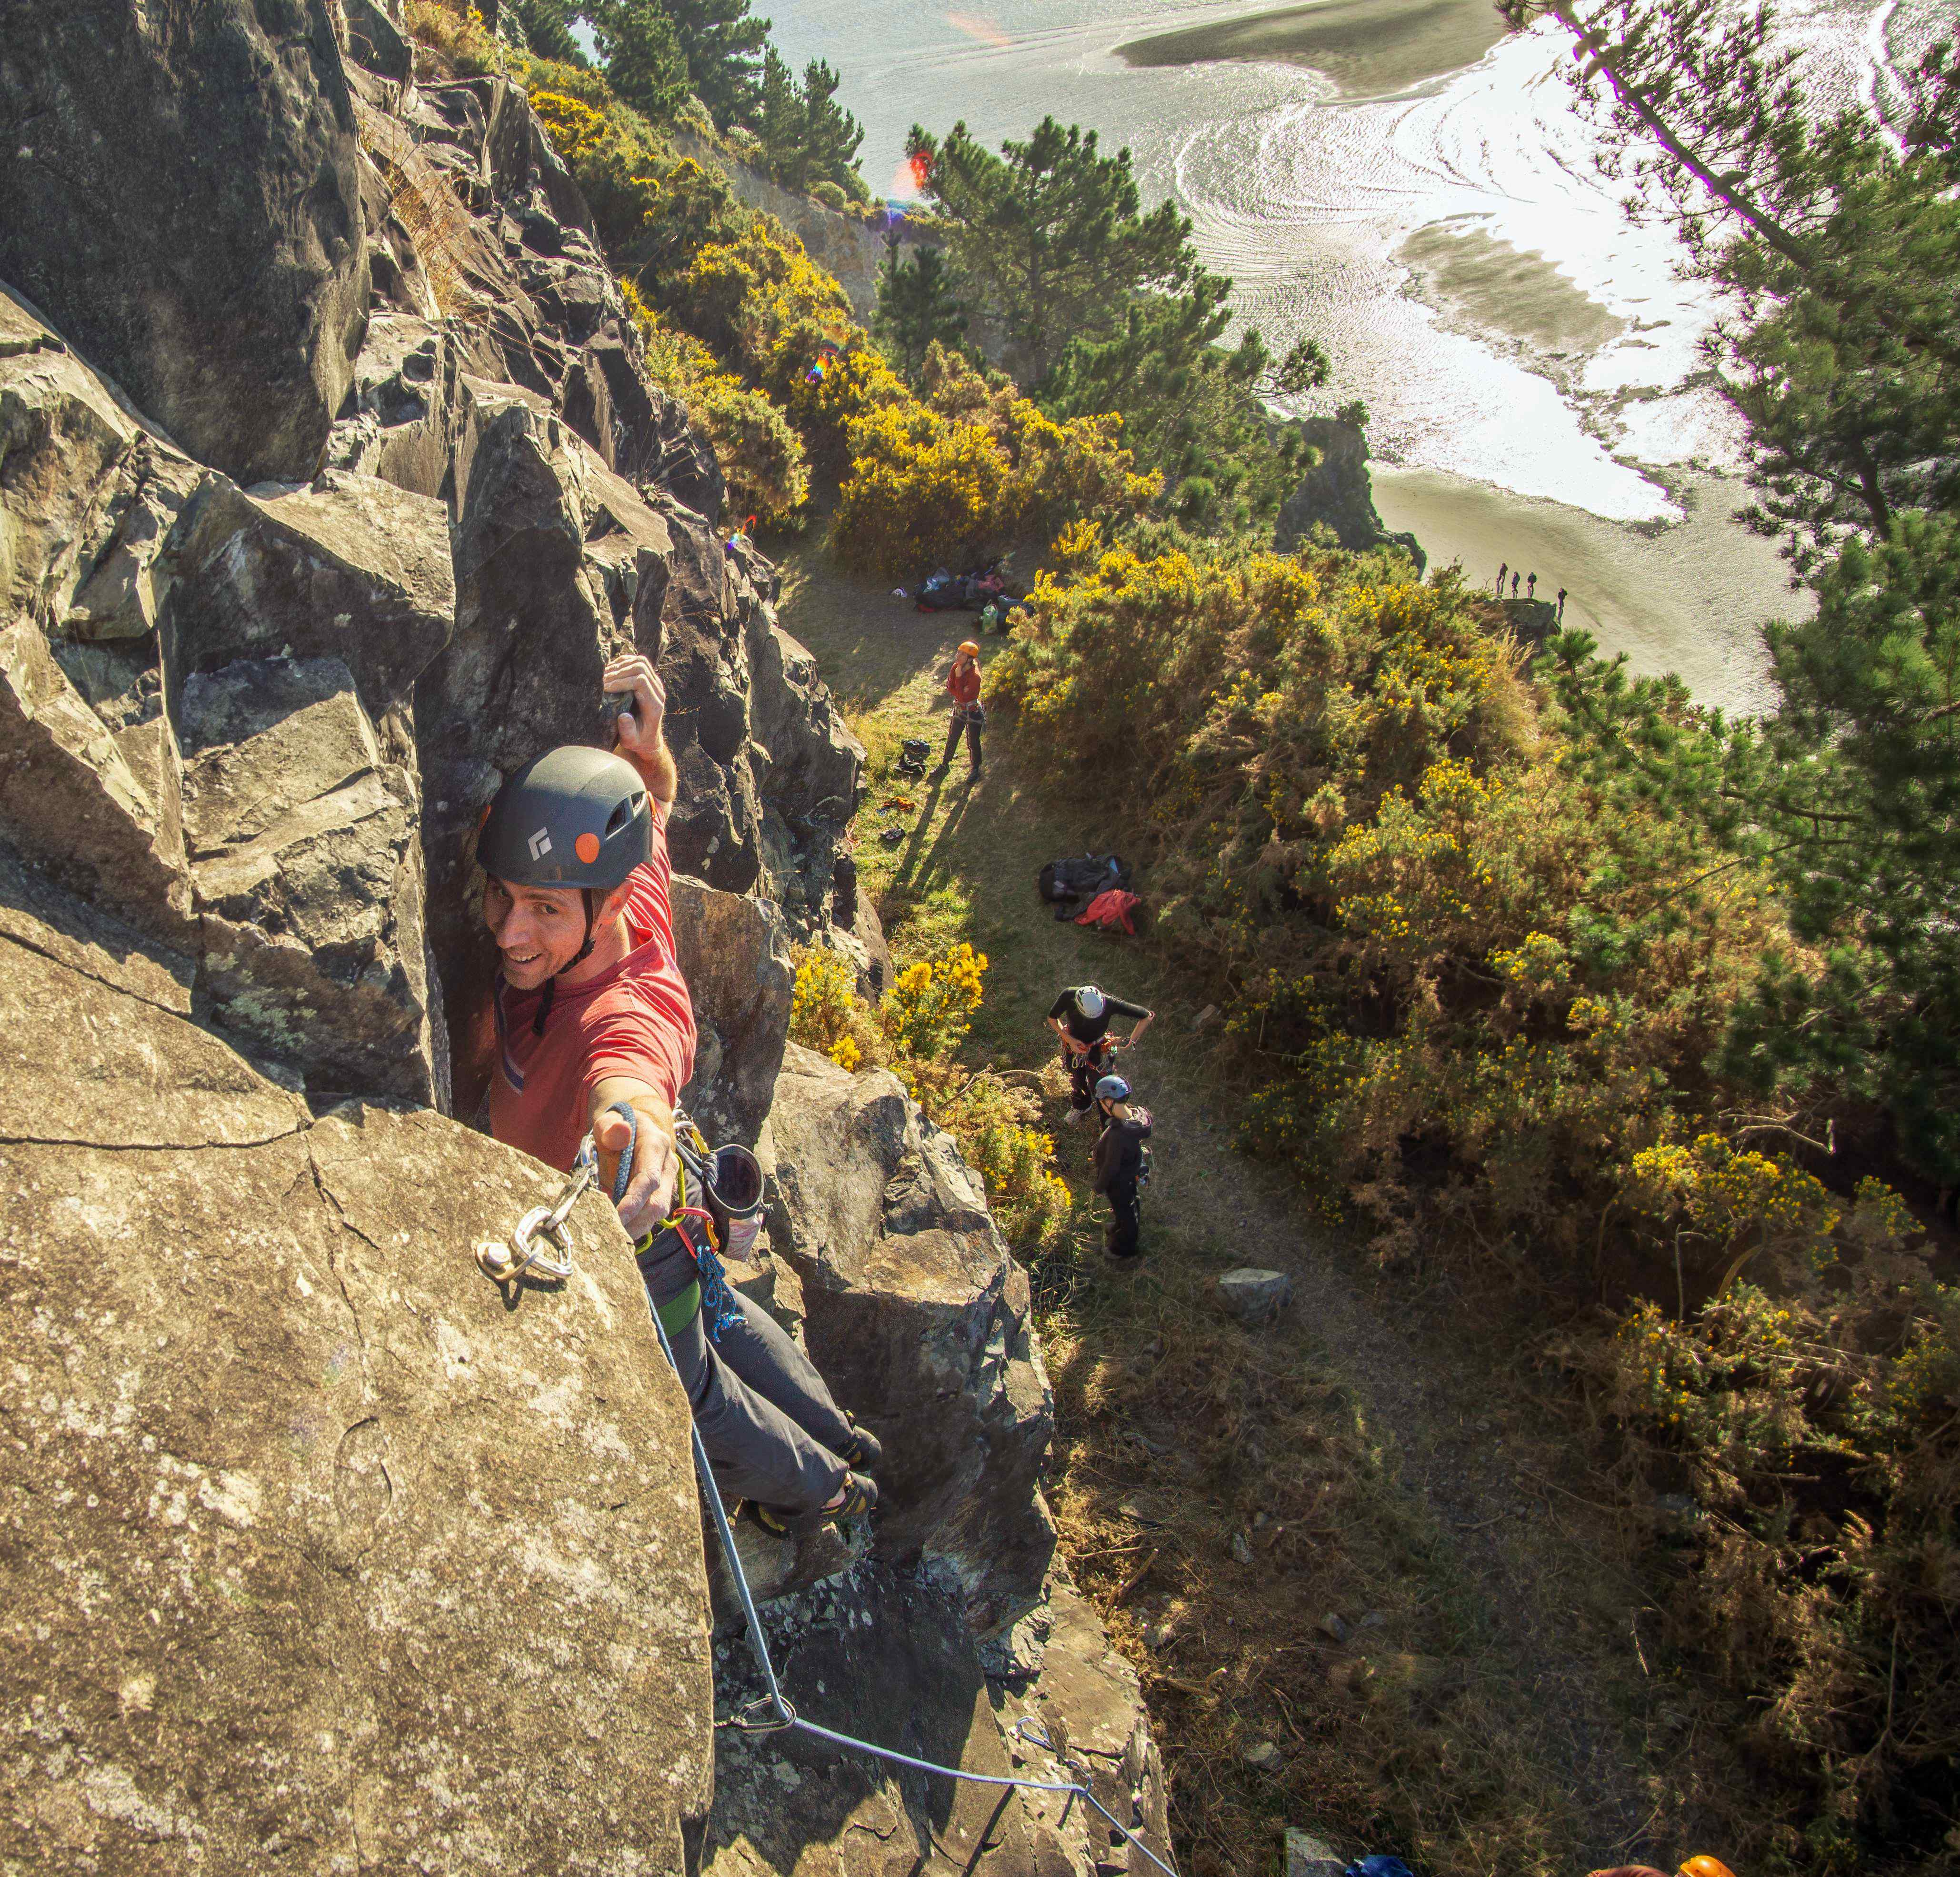 Climbing in the sun at Cutting Crag. Credit: Robin Reijers